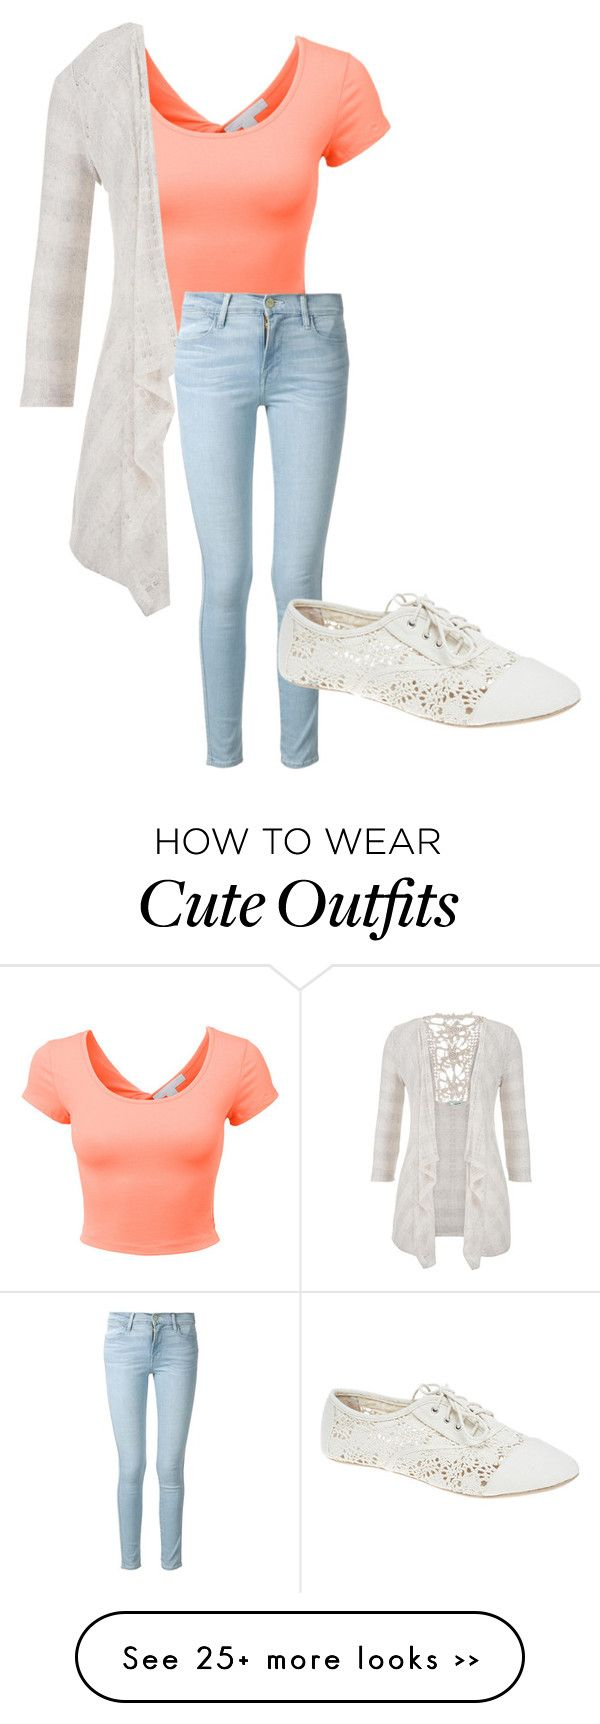 """Cute Outfit"" by grier2000 on Polyvore"